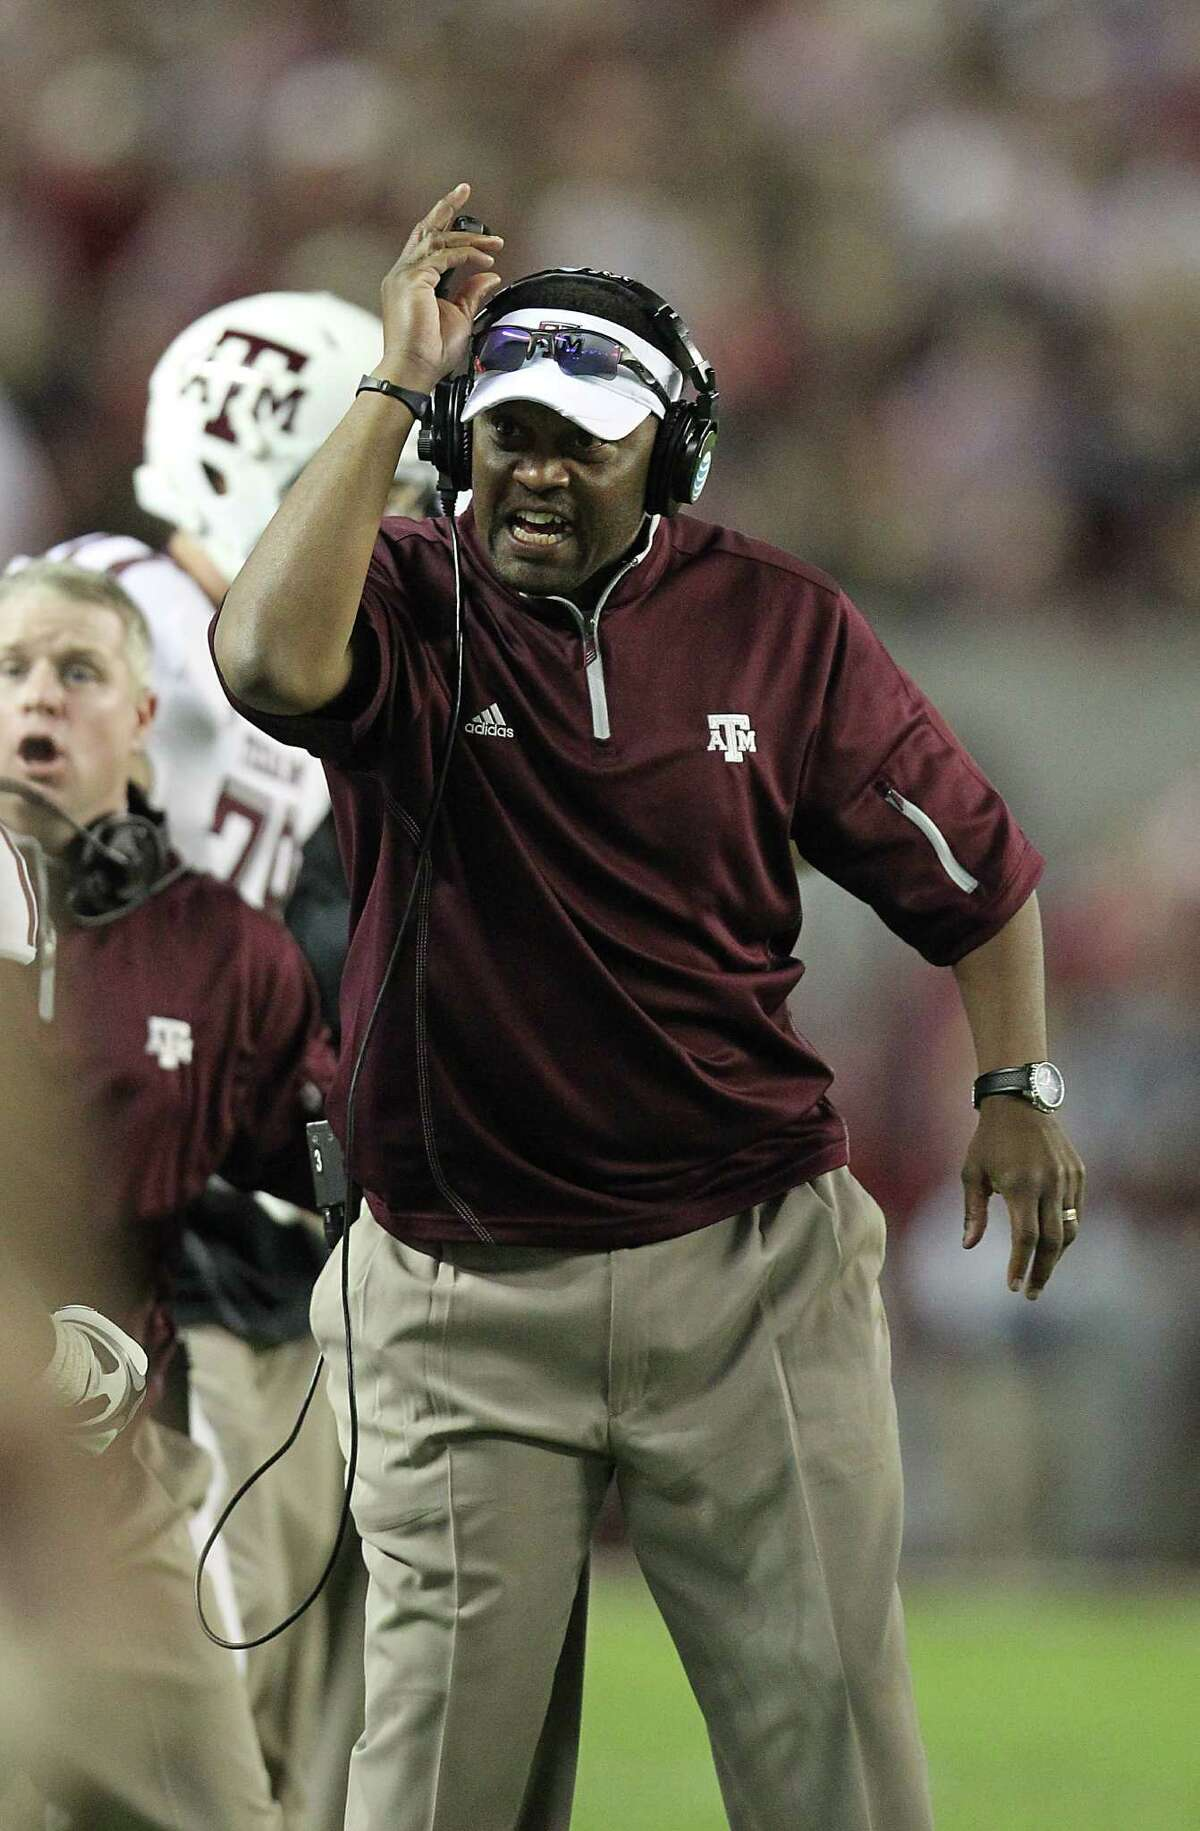 Texas A&M coach Kevin Sumlin and the Aggies have tried to keep their complex systen on offense simple for their players.